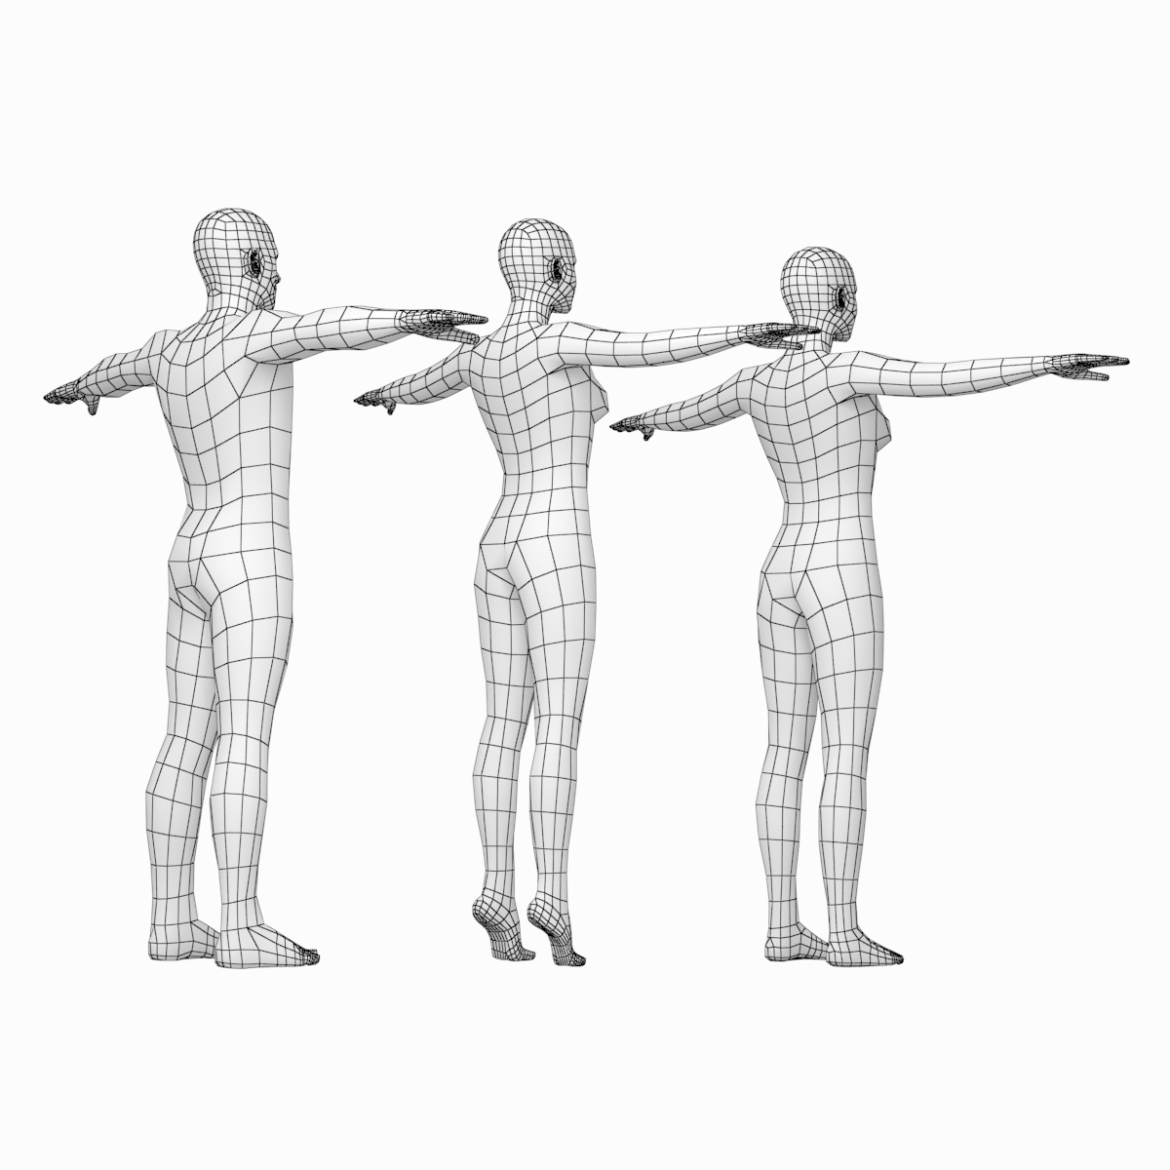 male and female base mesh in t-pose 3d model png stl obj ma mb max fbx dxf dwg dae c4d 3ds txt 305175